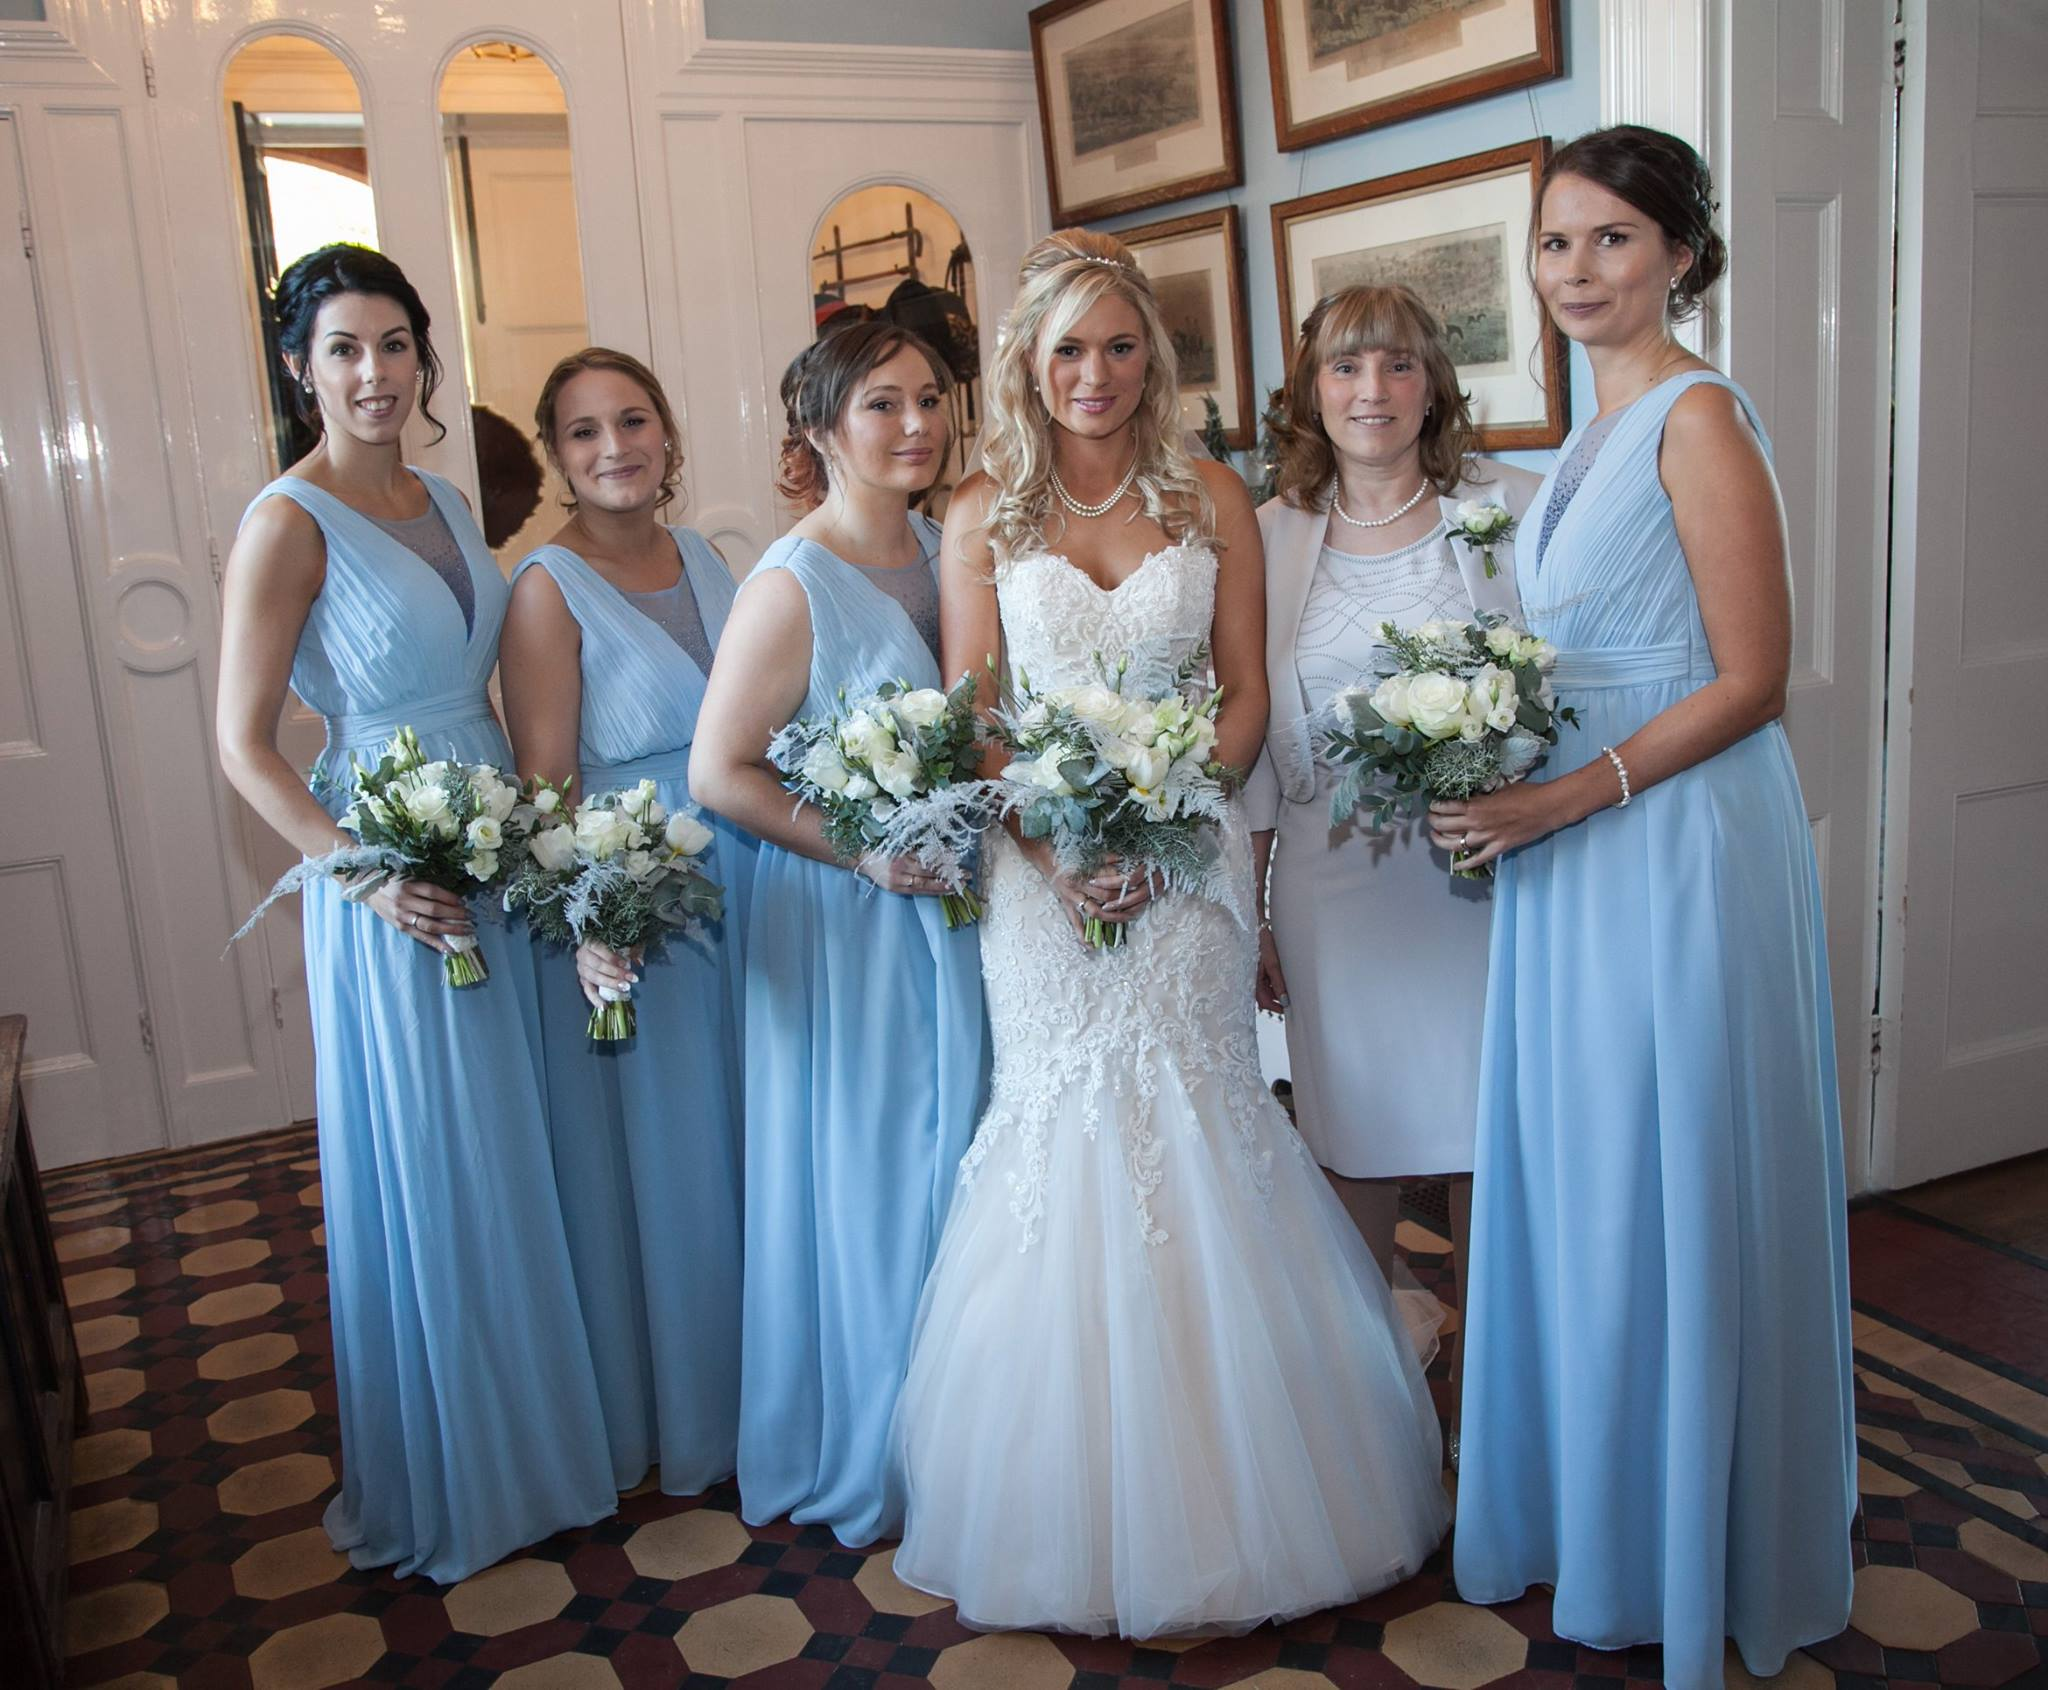 Winter wedding flowers sussex. Bride and bridesmaids in frozen ice blue dresses